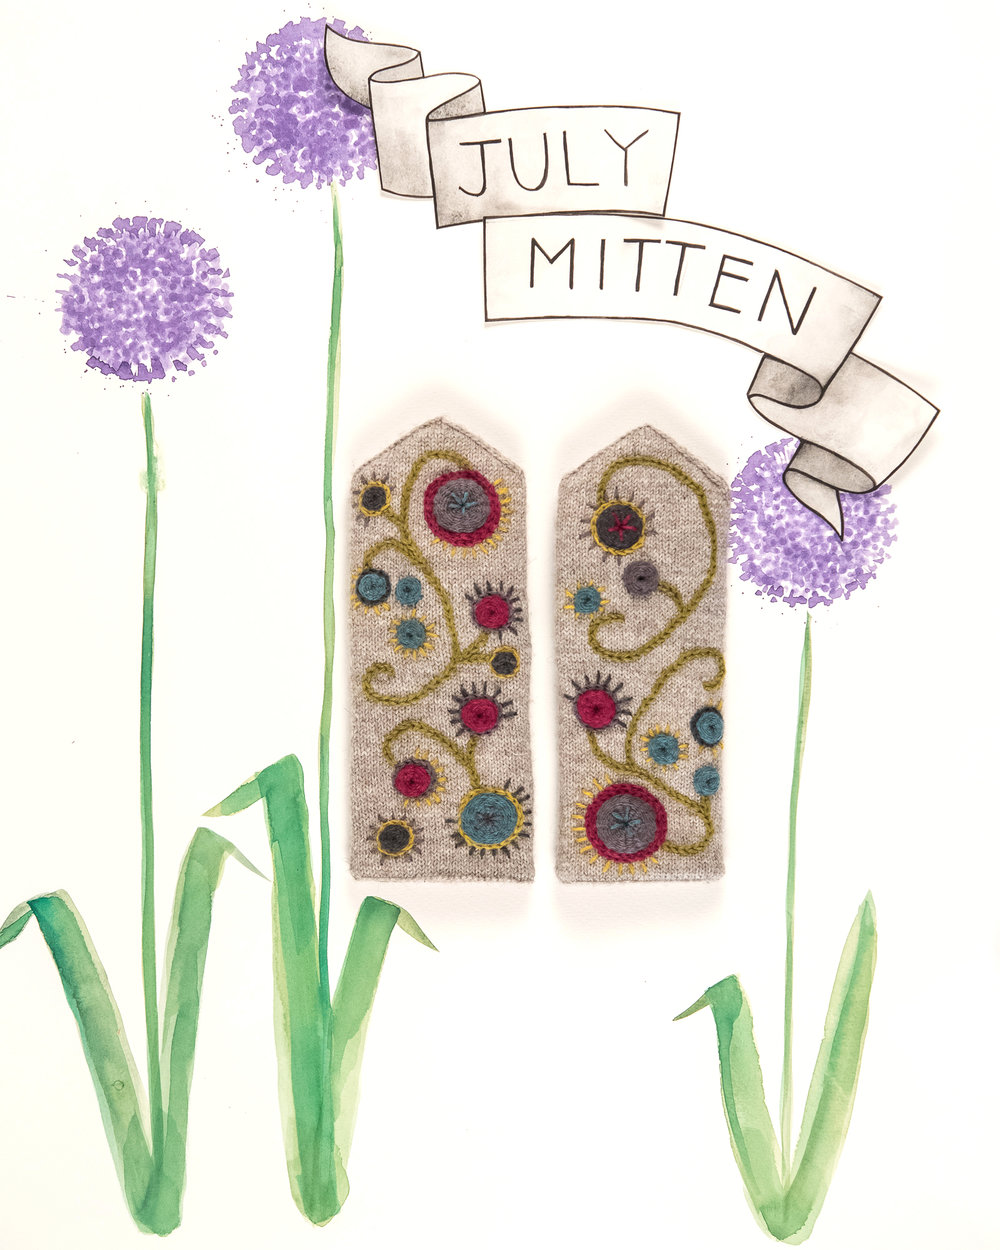 Kelbourne Woolens Year of Mittens July Mittens